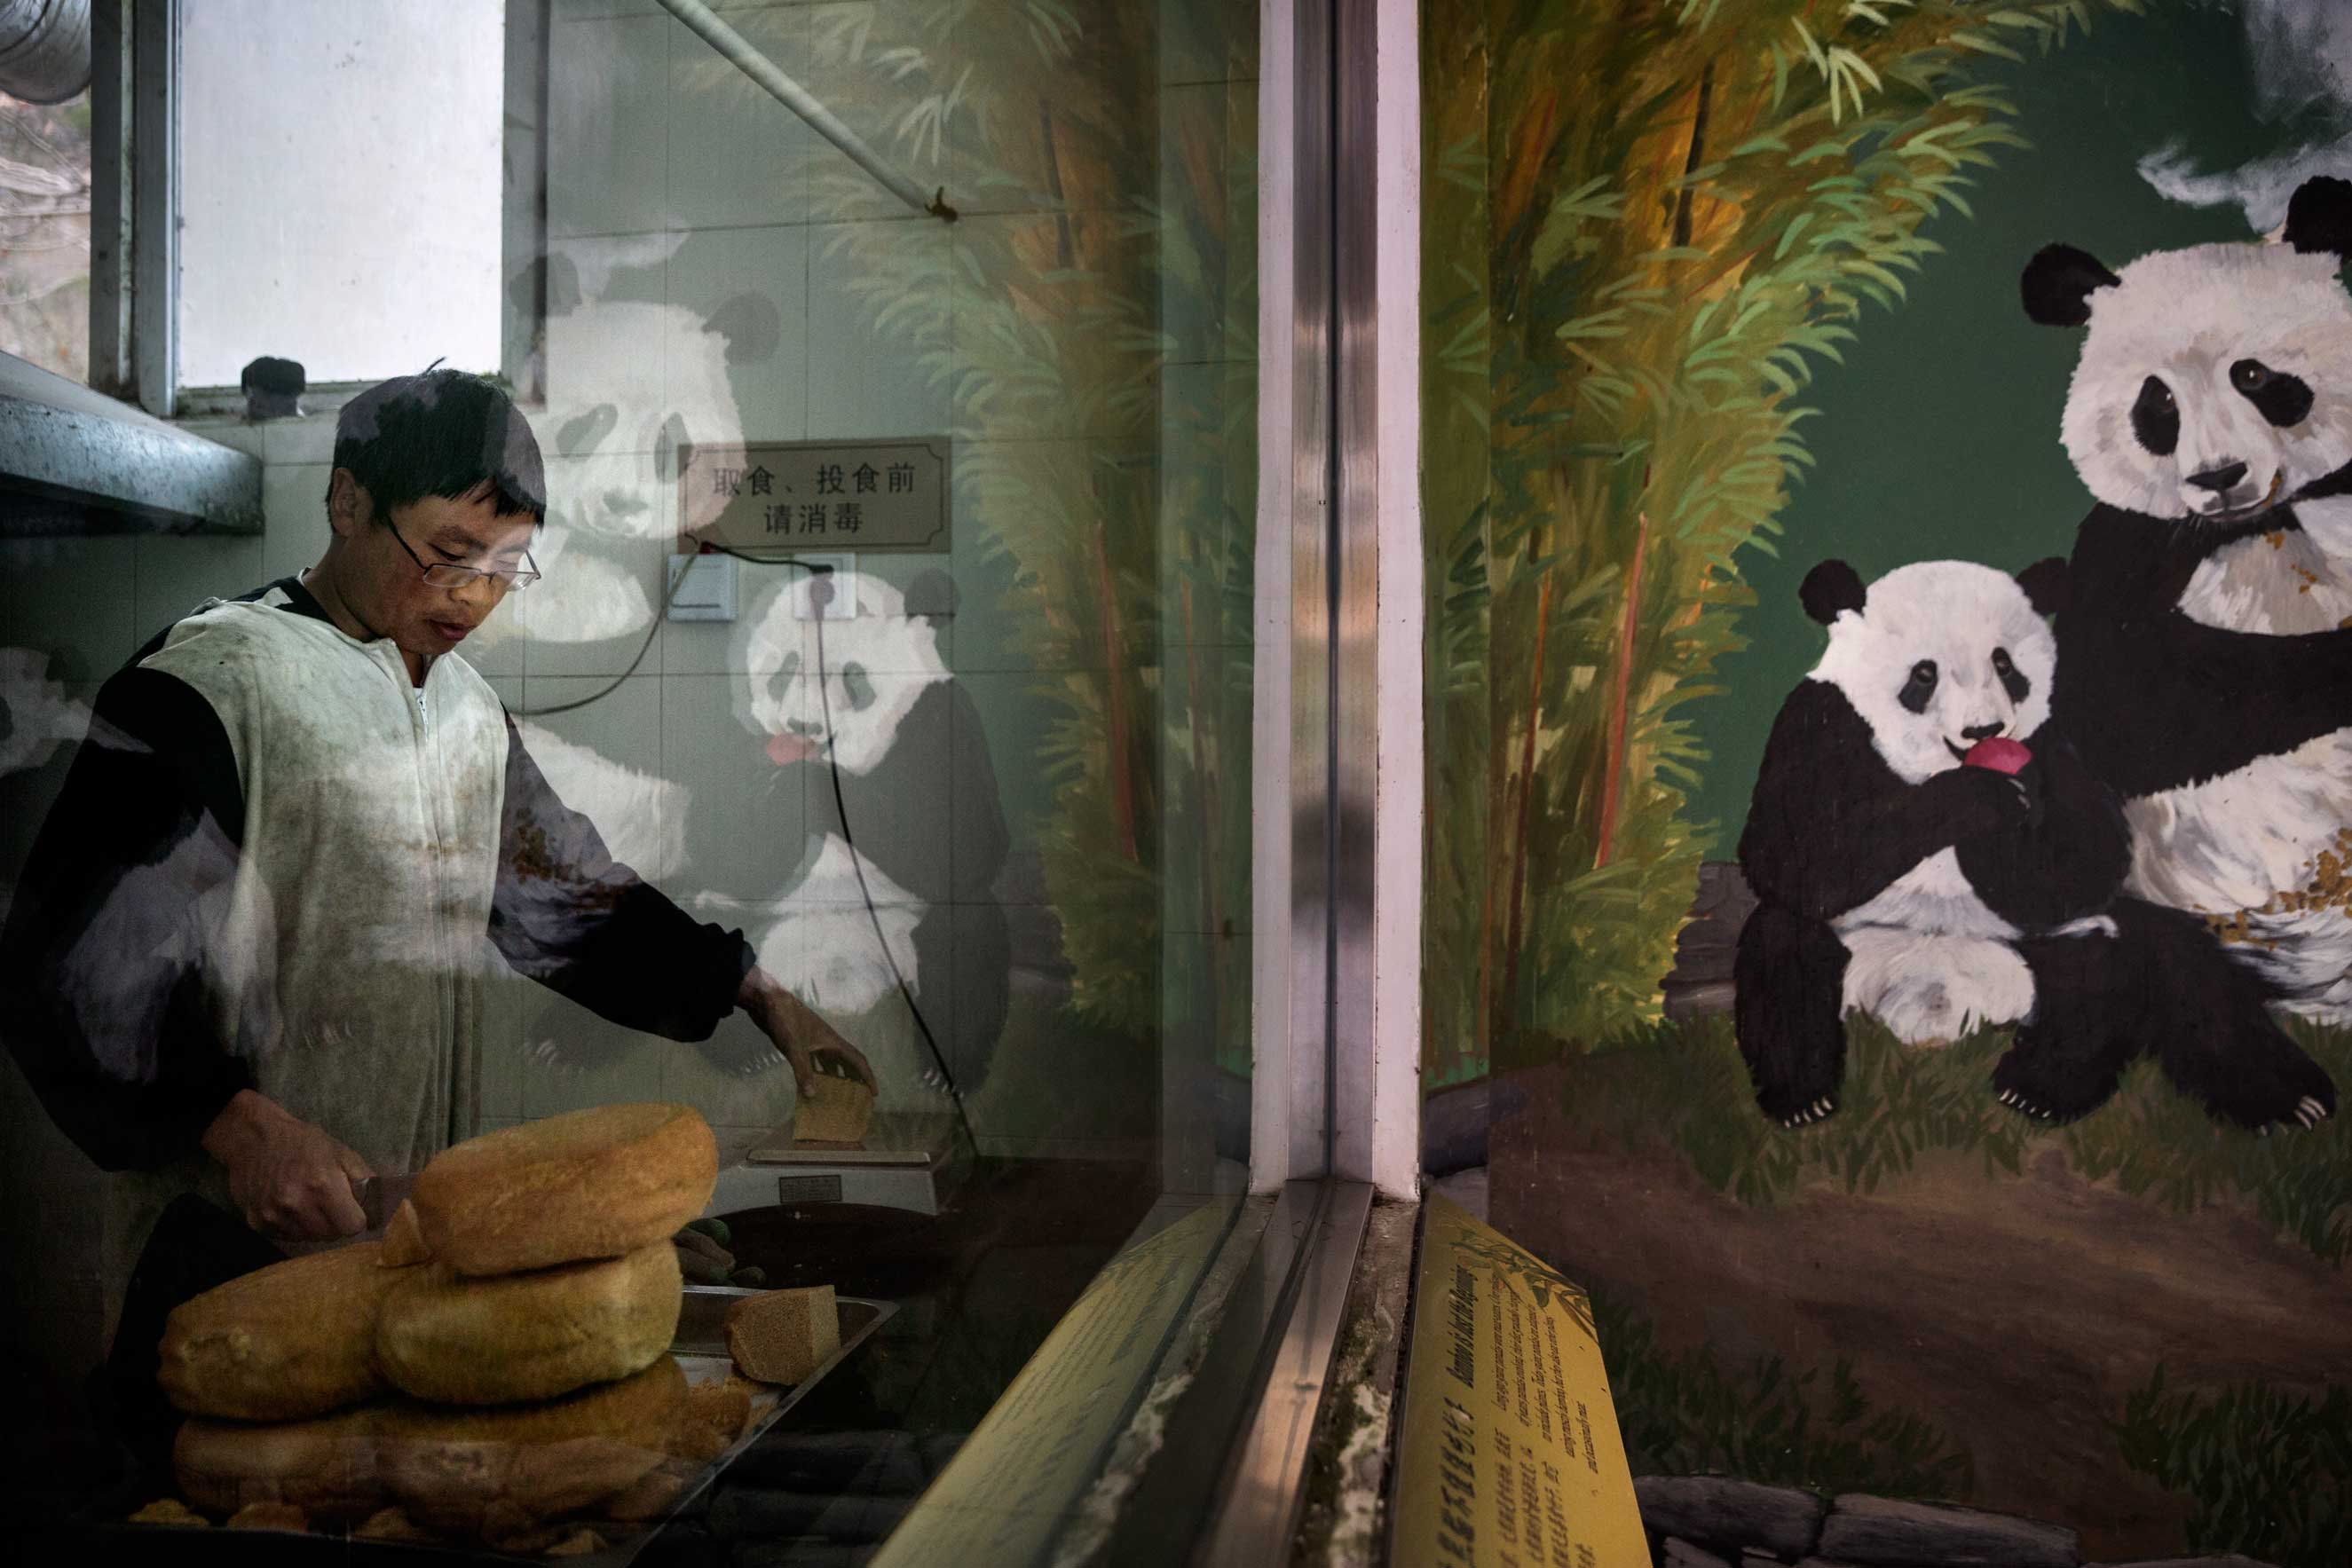 A panda mural is reflected in the window where specially made bread for the pandas is prepared, Dec. 2, 2015.